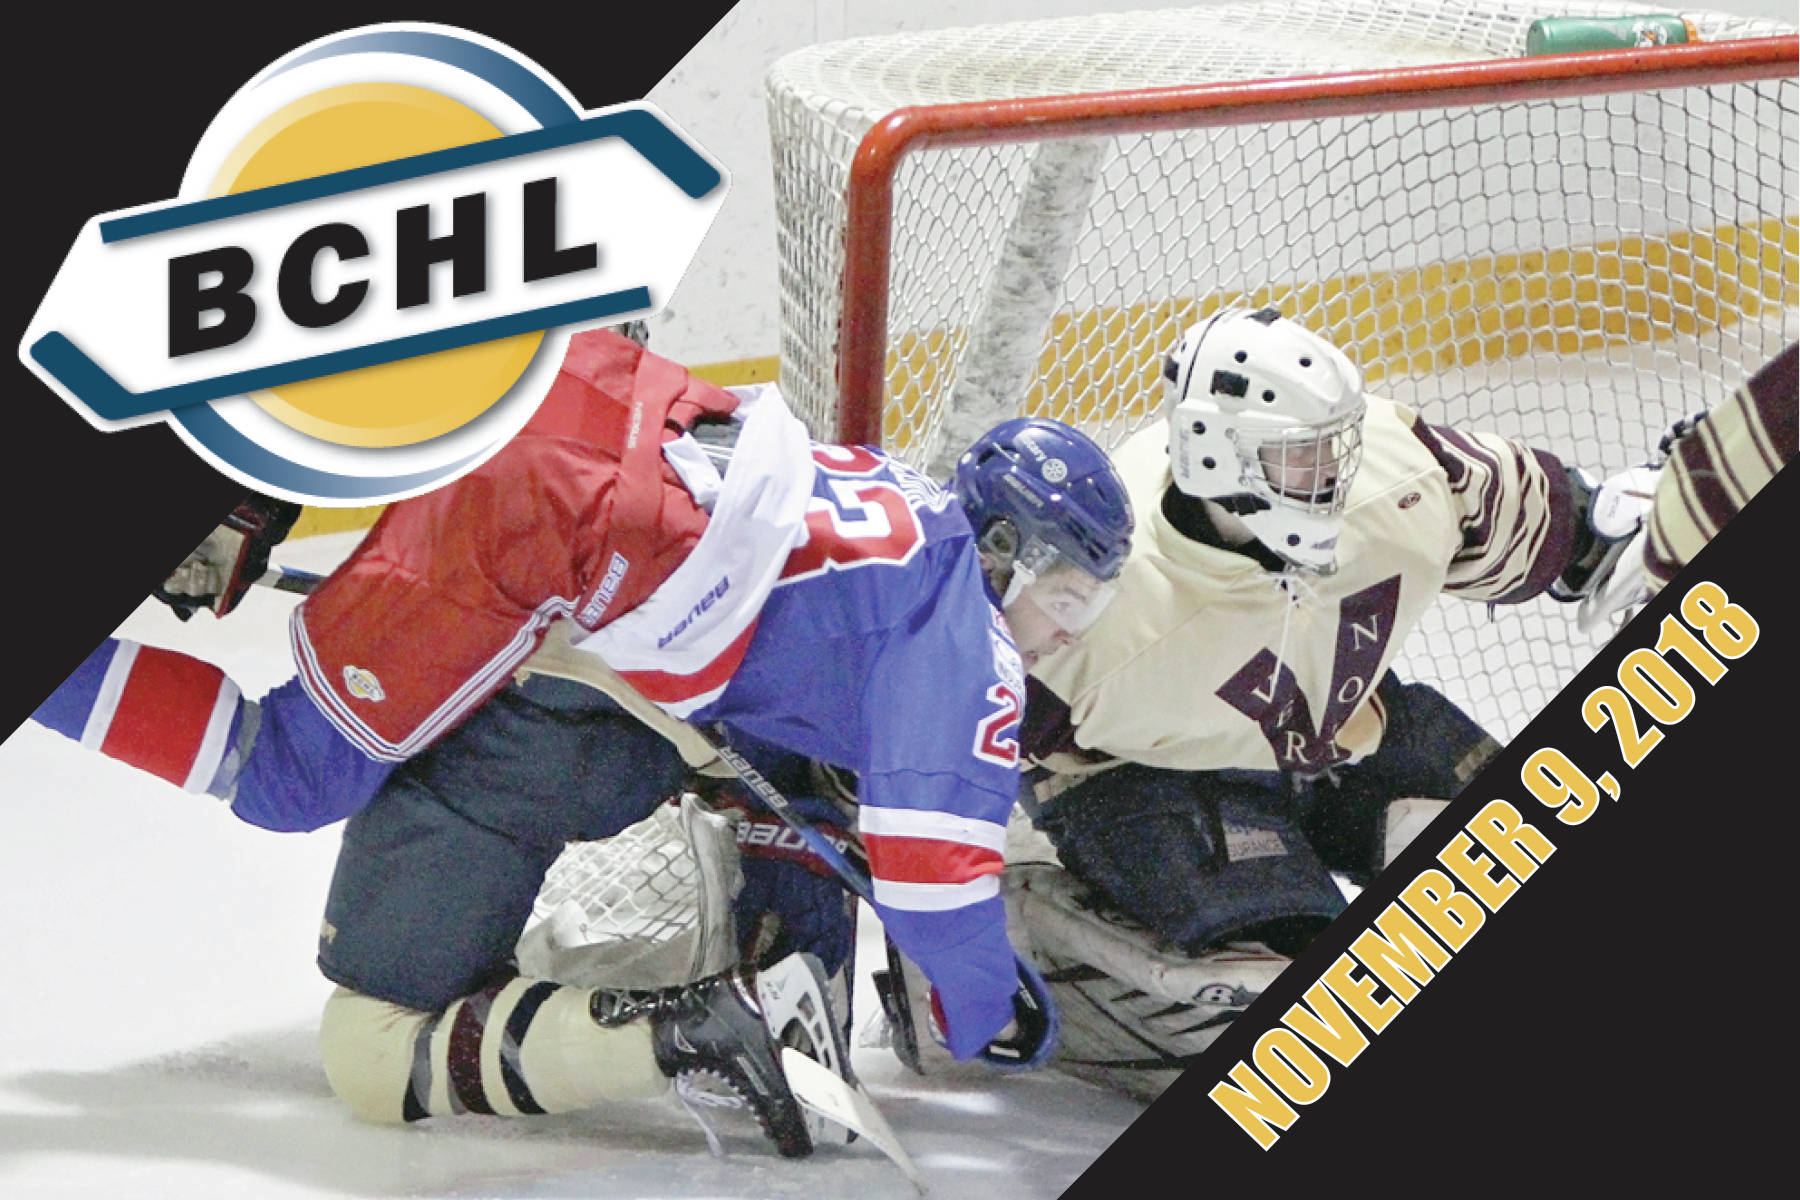 Around the BCHL: Moves for Movember and BCHL adds stats